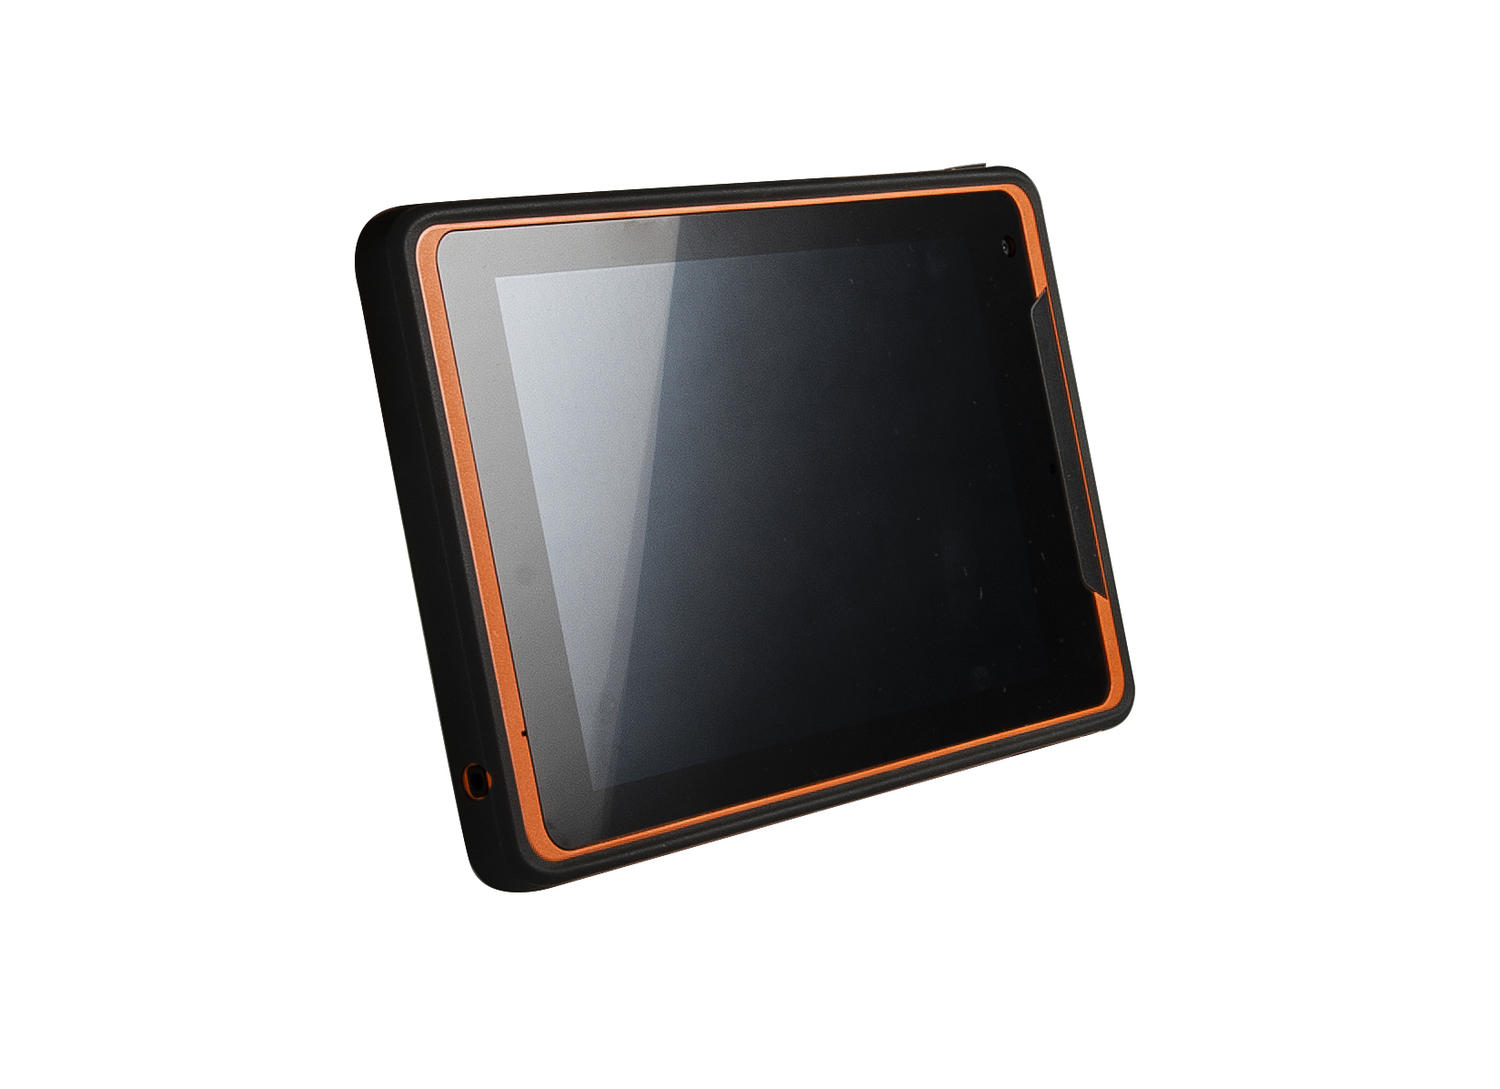 AIM-35 Industriel tablet